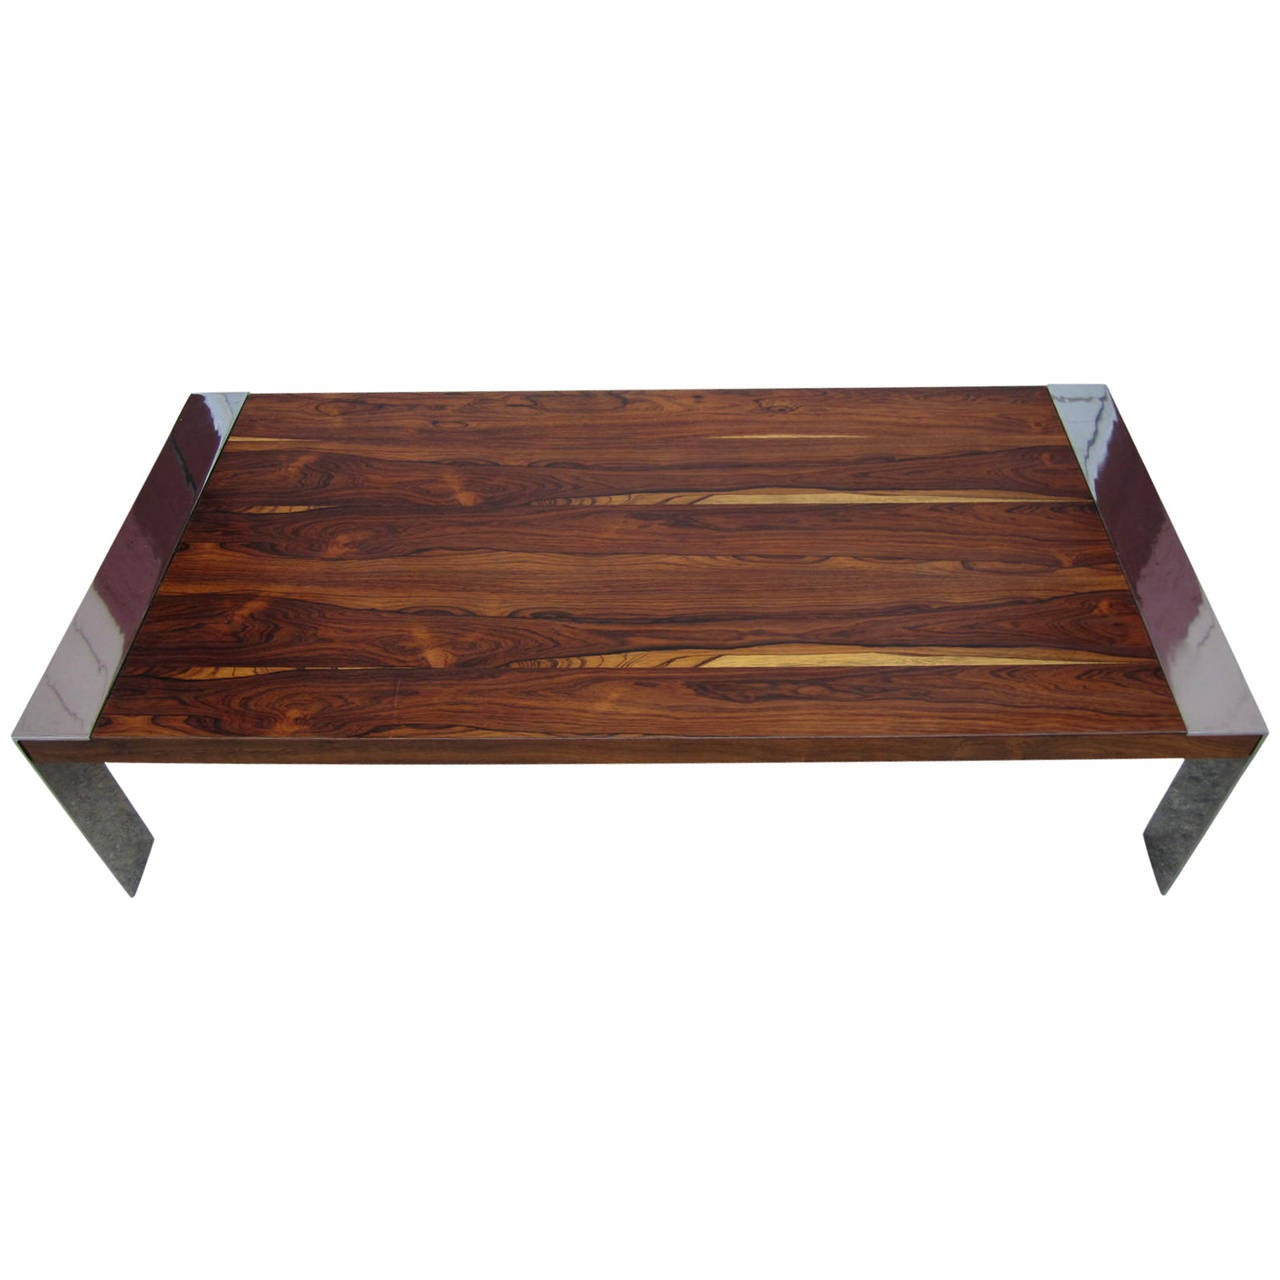 Fabulous Milo Baughman Chrome And Rosewood Coffee Table Mid Century Modern At 1stdibs